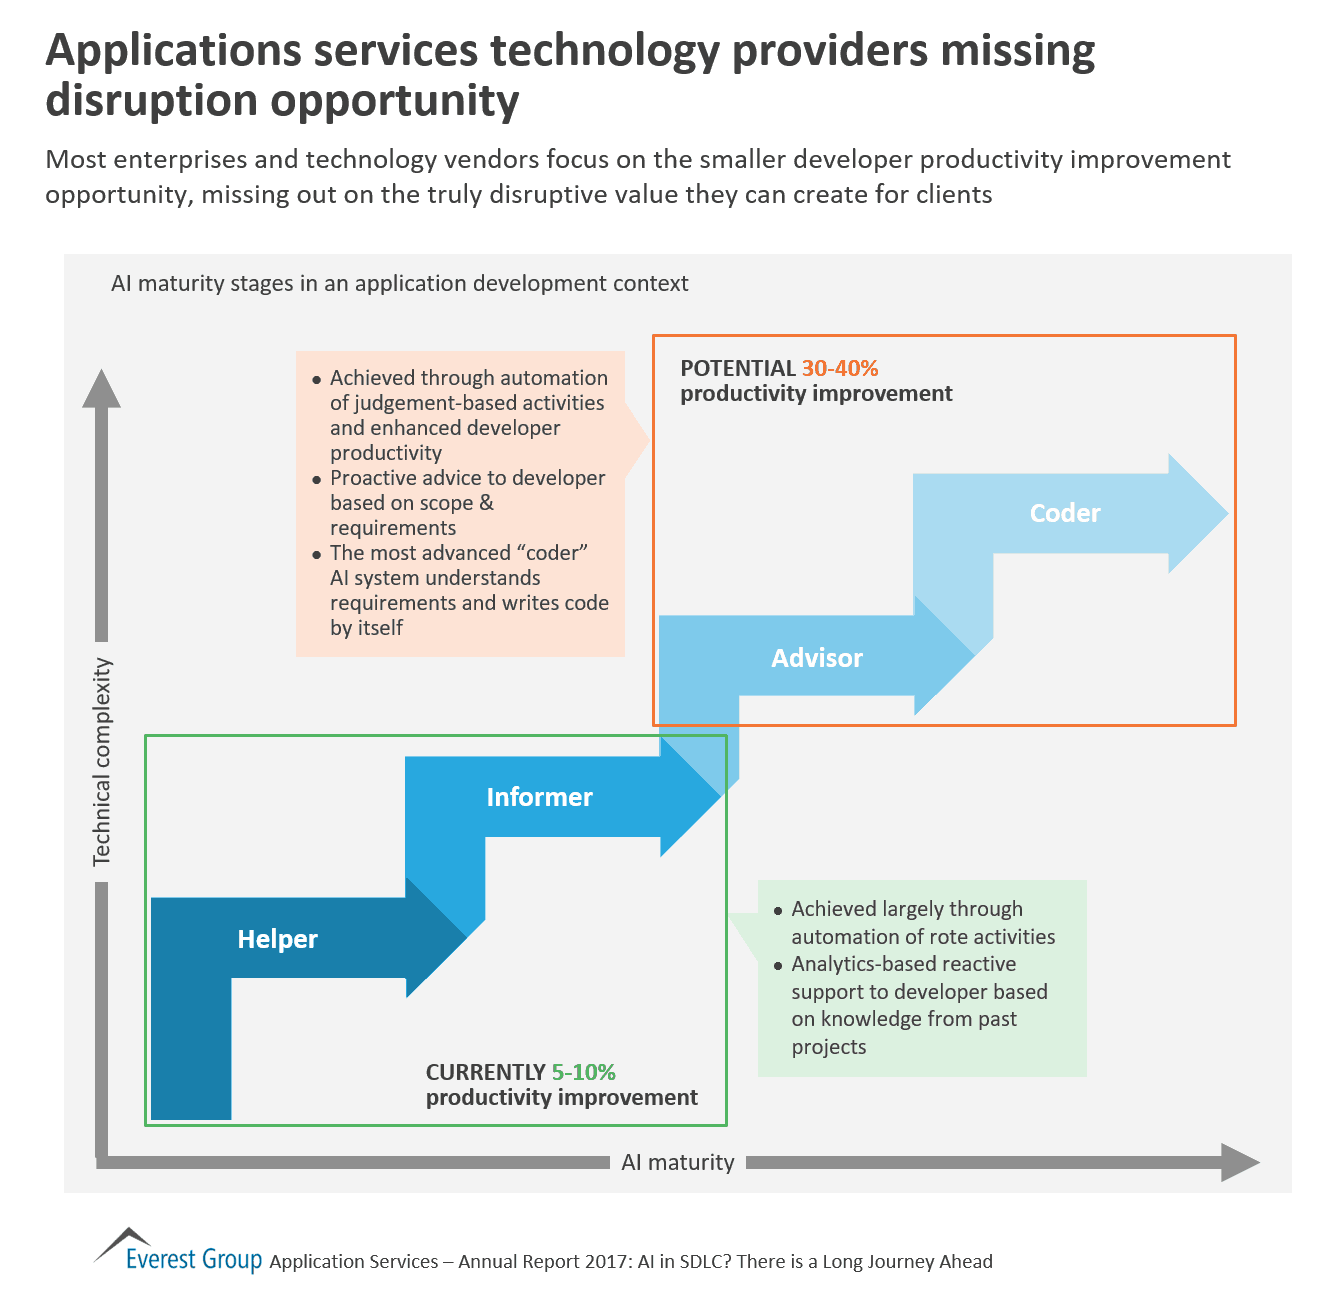 Applications Services Technology Providers Missing